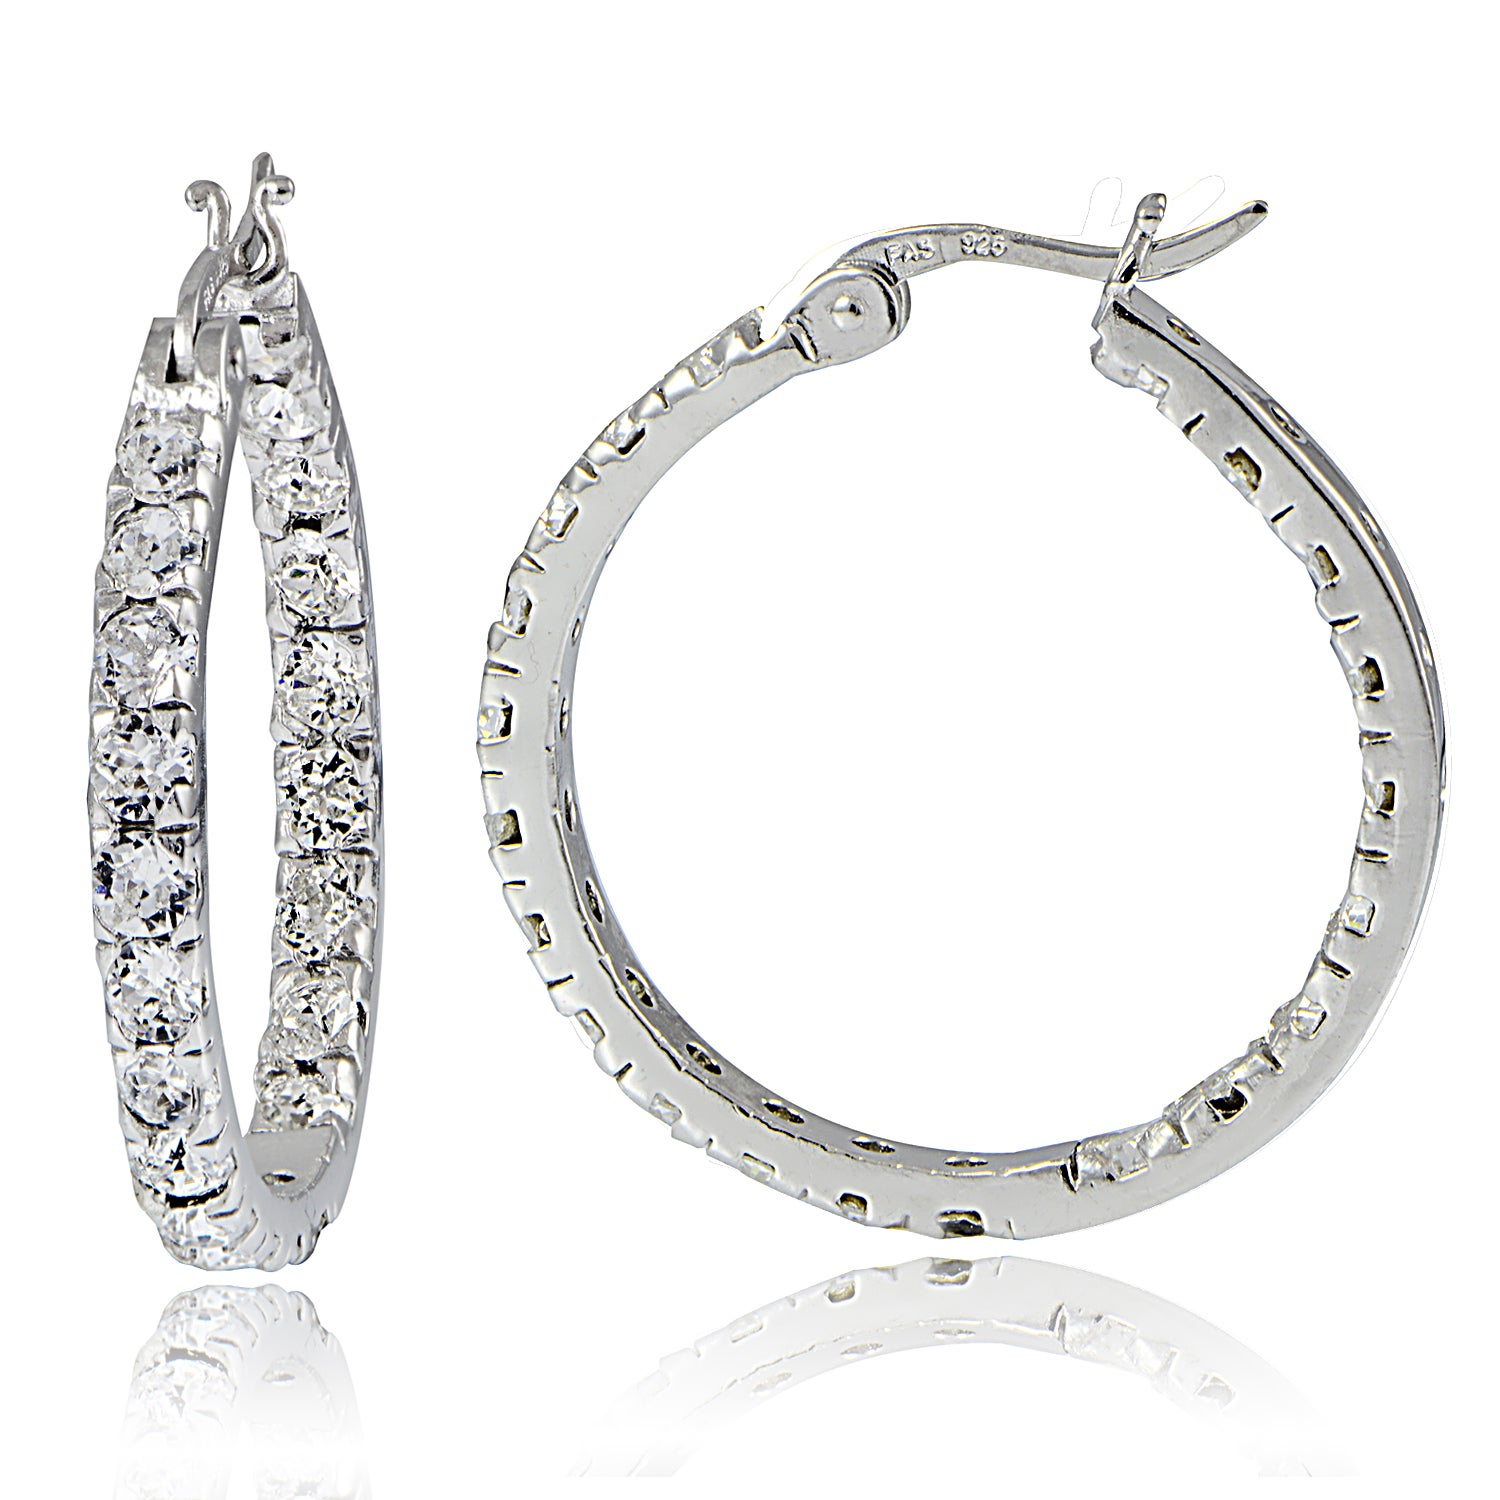 autumn shoes buying now Discover Crystal Ice Sterling Silver Swarovski Elements Inside-Out Large Hoop  Earrings